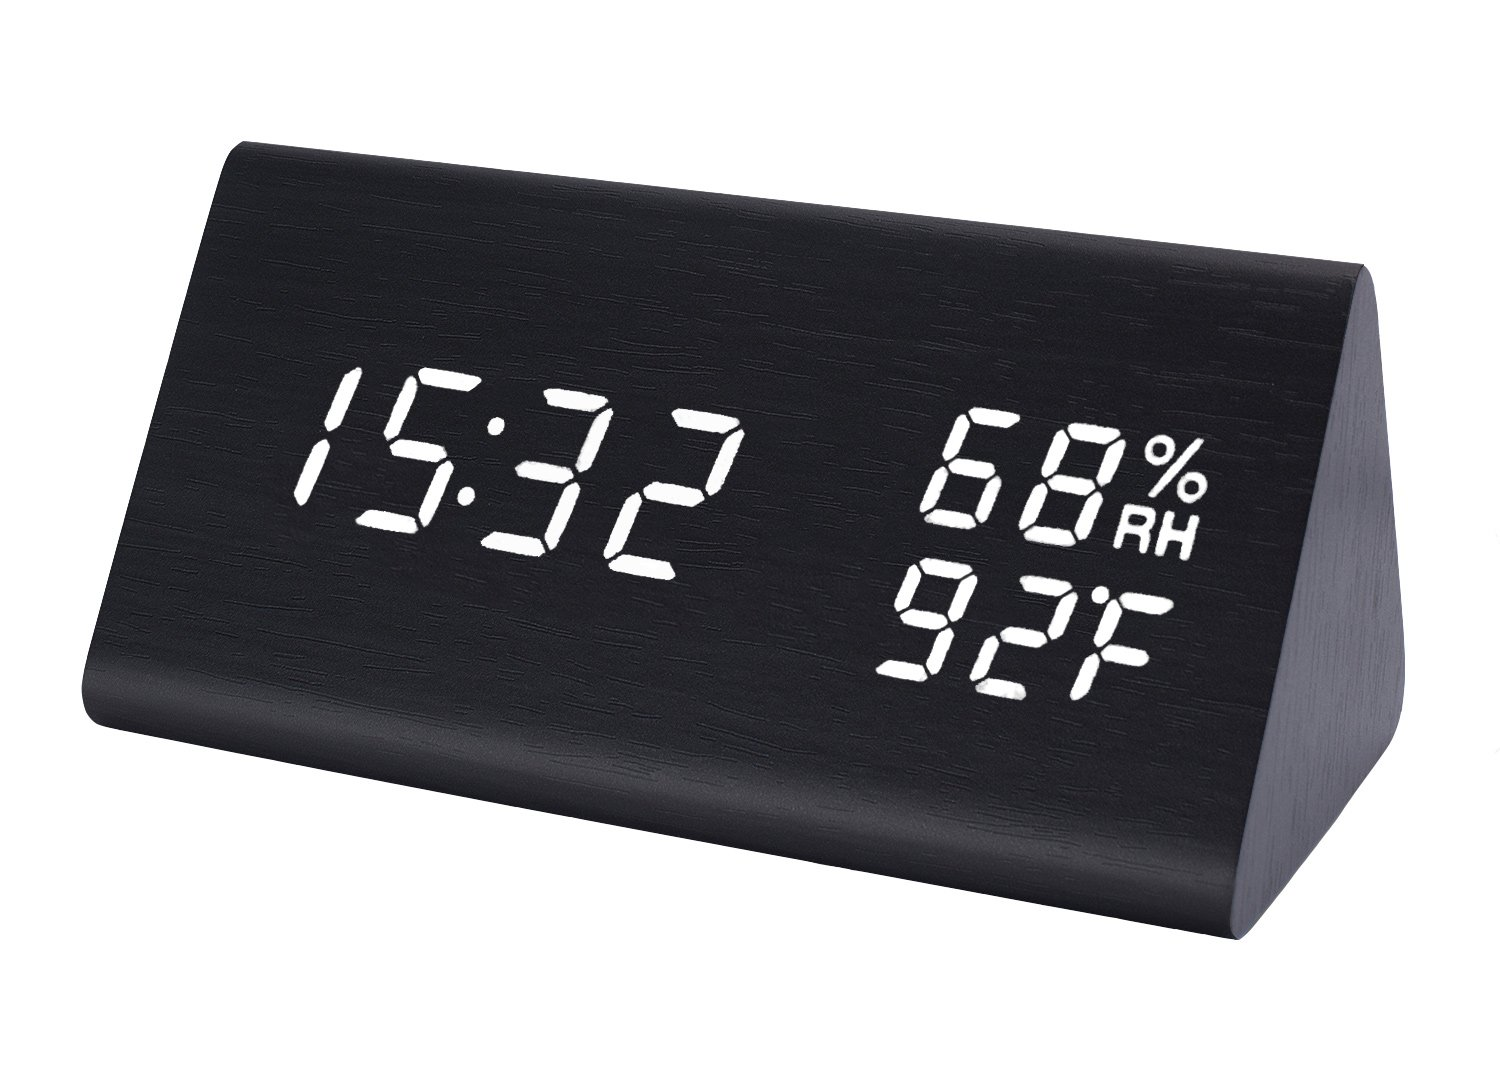 Raercodia Wooden Desk Clock LED Wood Alarm Clock Modern Digital Electronic Clock Display Time Date Calendar Temperature Humidity Brightness Adjust Voice Control USB Powered Clock for Home Bedroom Office Bedroom TV Stand(Black, White) CACK-011T-150BKWH